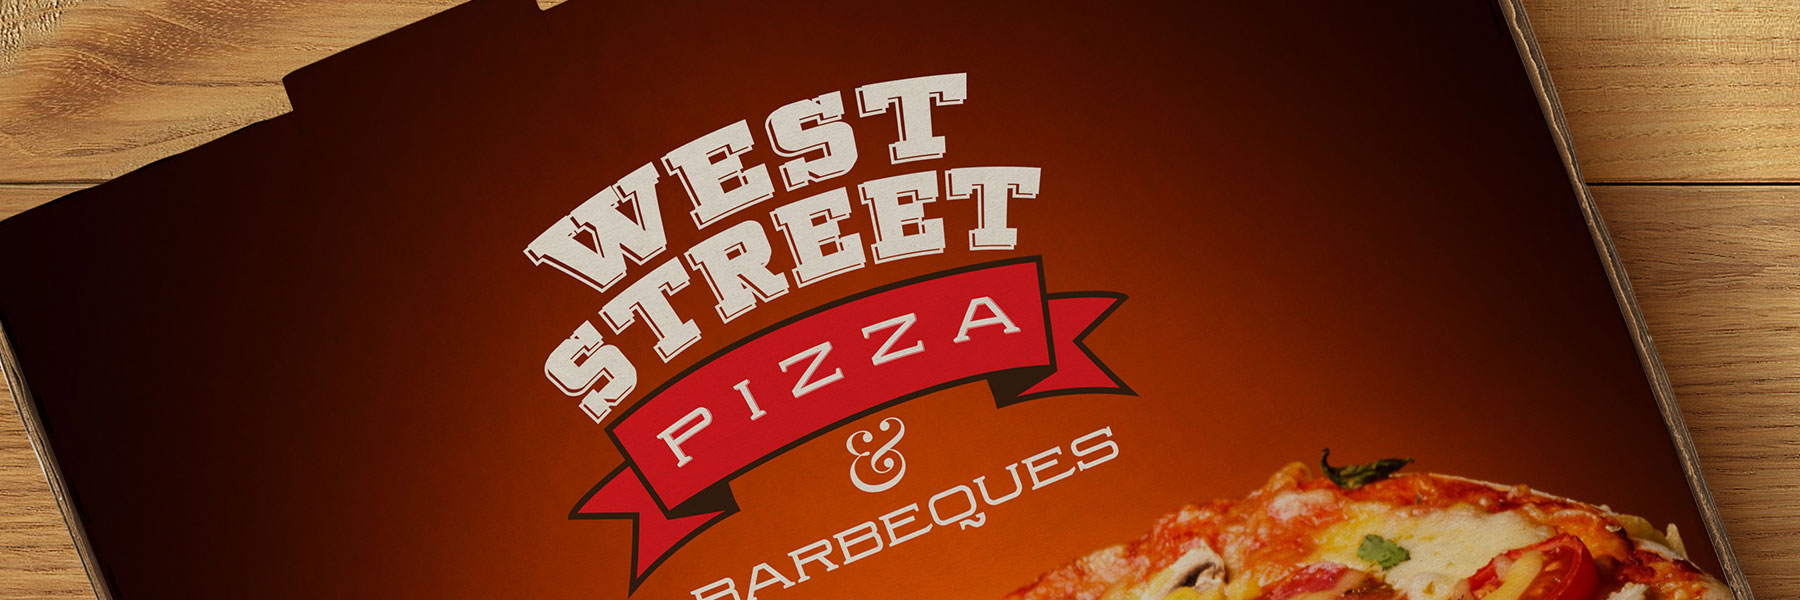 West Street Pizza